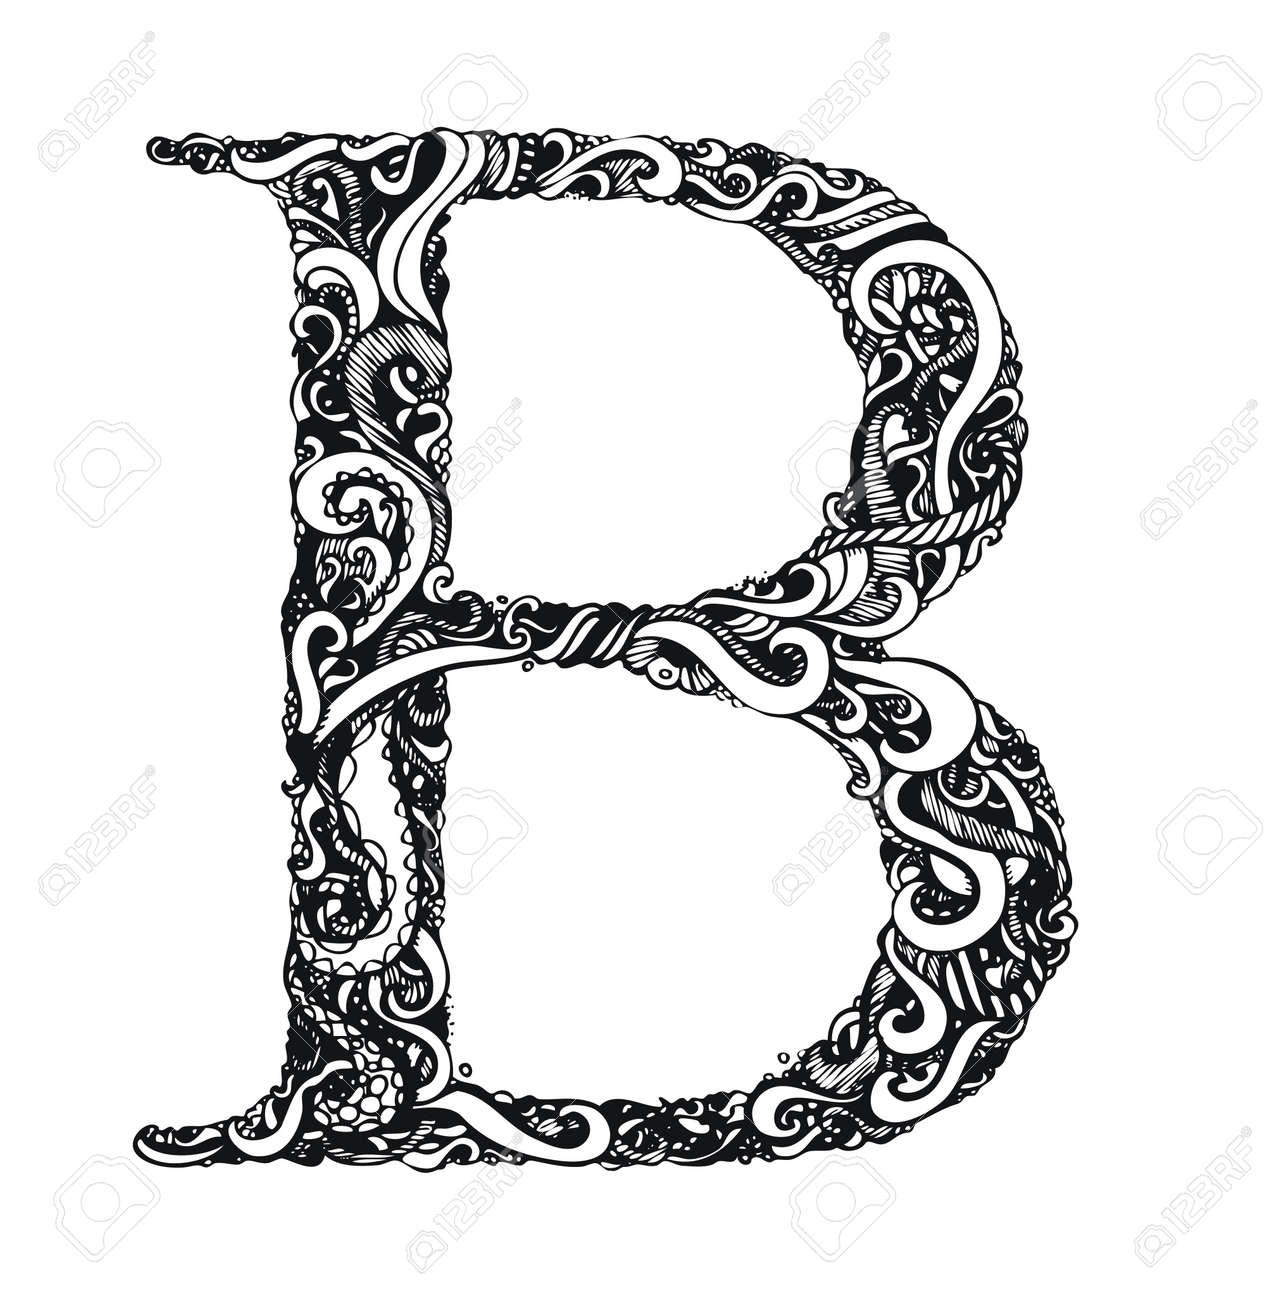 Lettre Capital B Calligraphie Vintage Style Swirly Hand Drawn